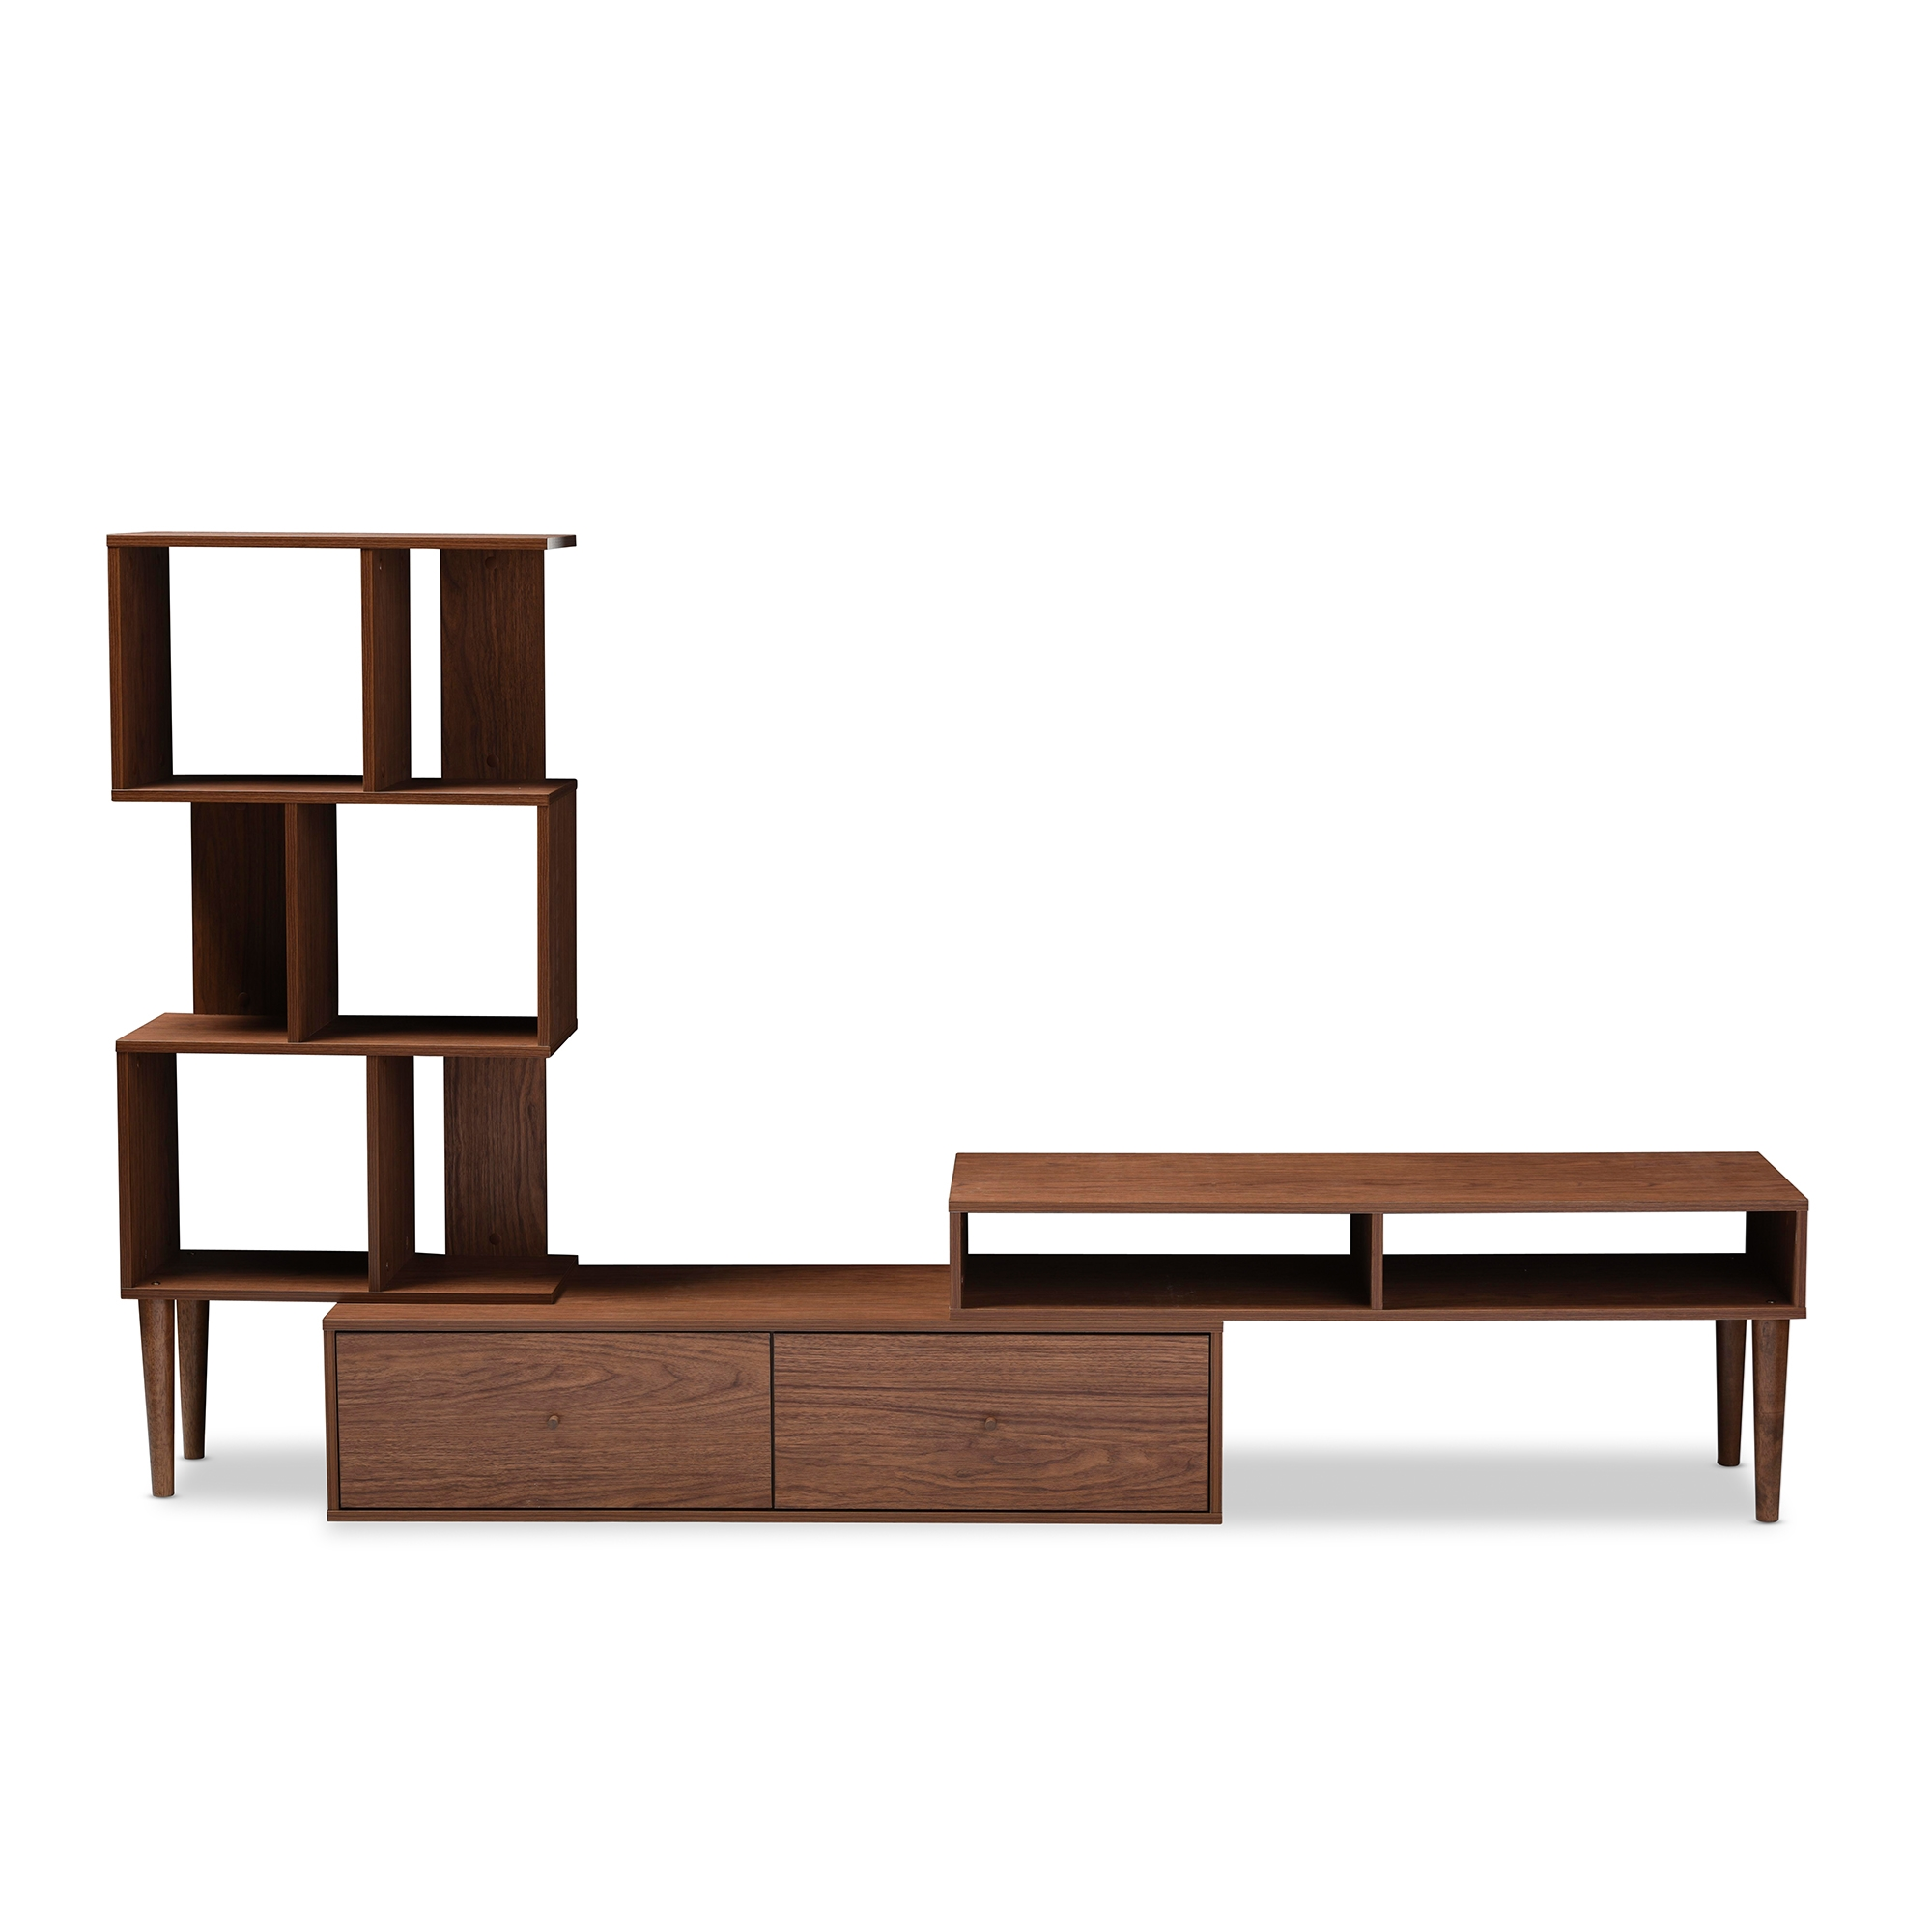 Beau Baxton Studio Haversham Mid Century Retro Modern TV Stand Entertainment  Center And Display Unit ...